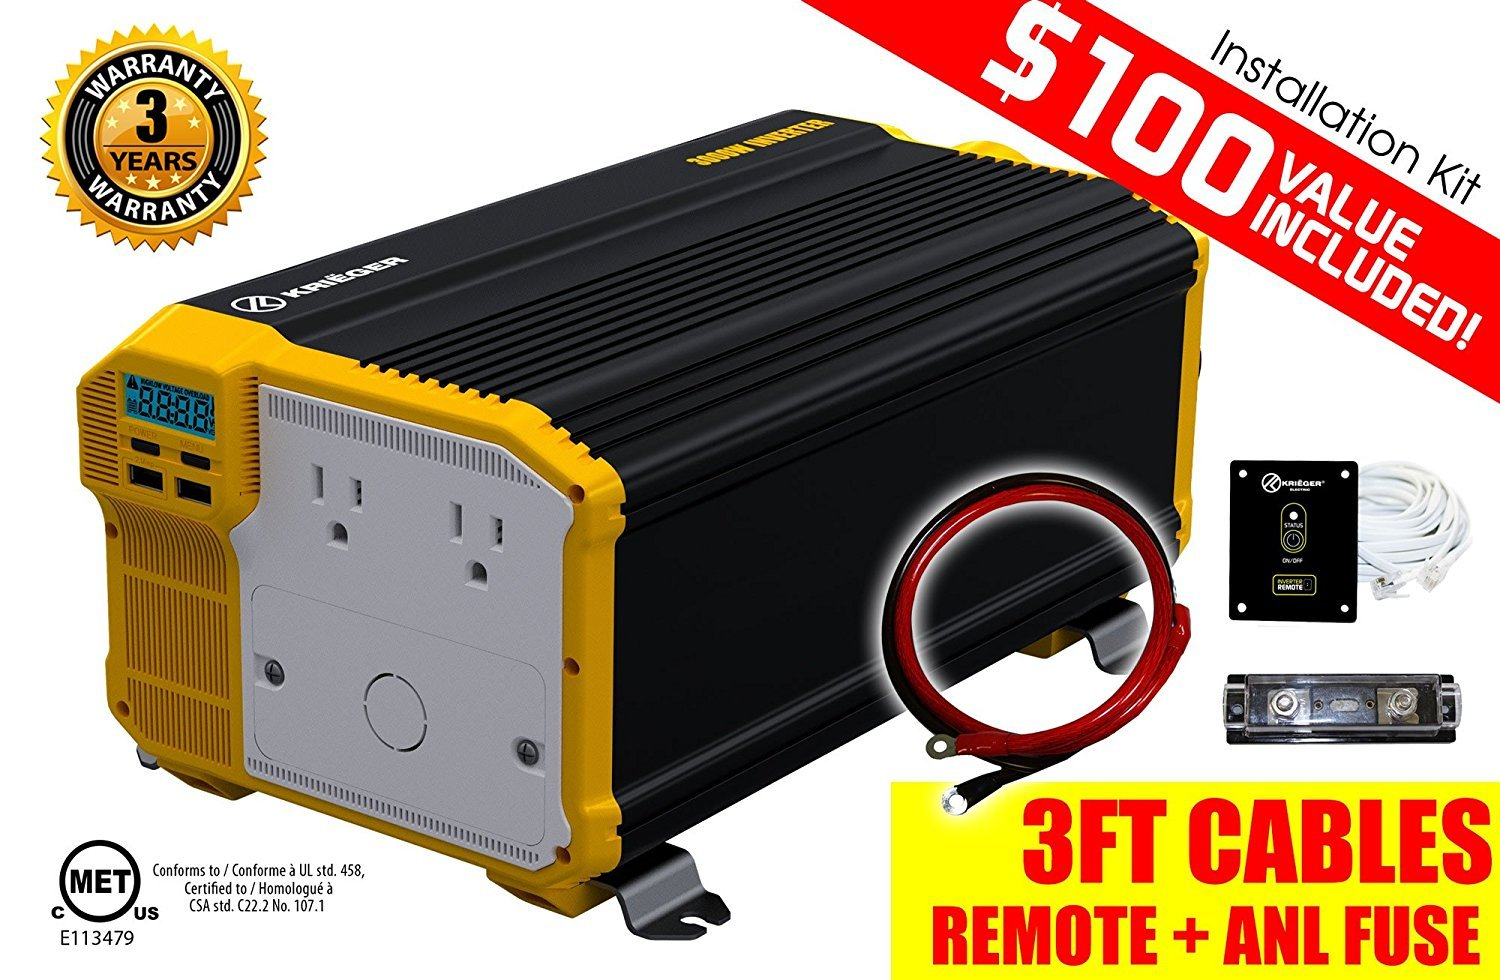 KRIËGER 4000 Watt 12V Power Inverter, Dual 110V AC outlets, Automotive Car Inverter Best Appliance Back Up Power Supply For Refrigerators, Microwaves, Coffee Maker, Chainsaws, Vacuums, Power Tools Etc